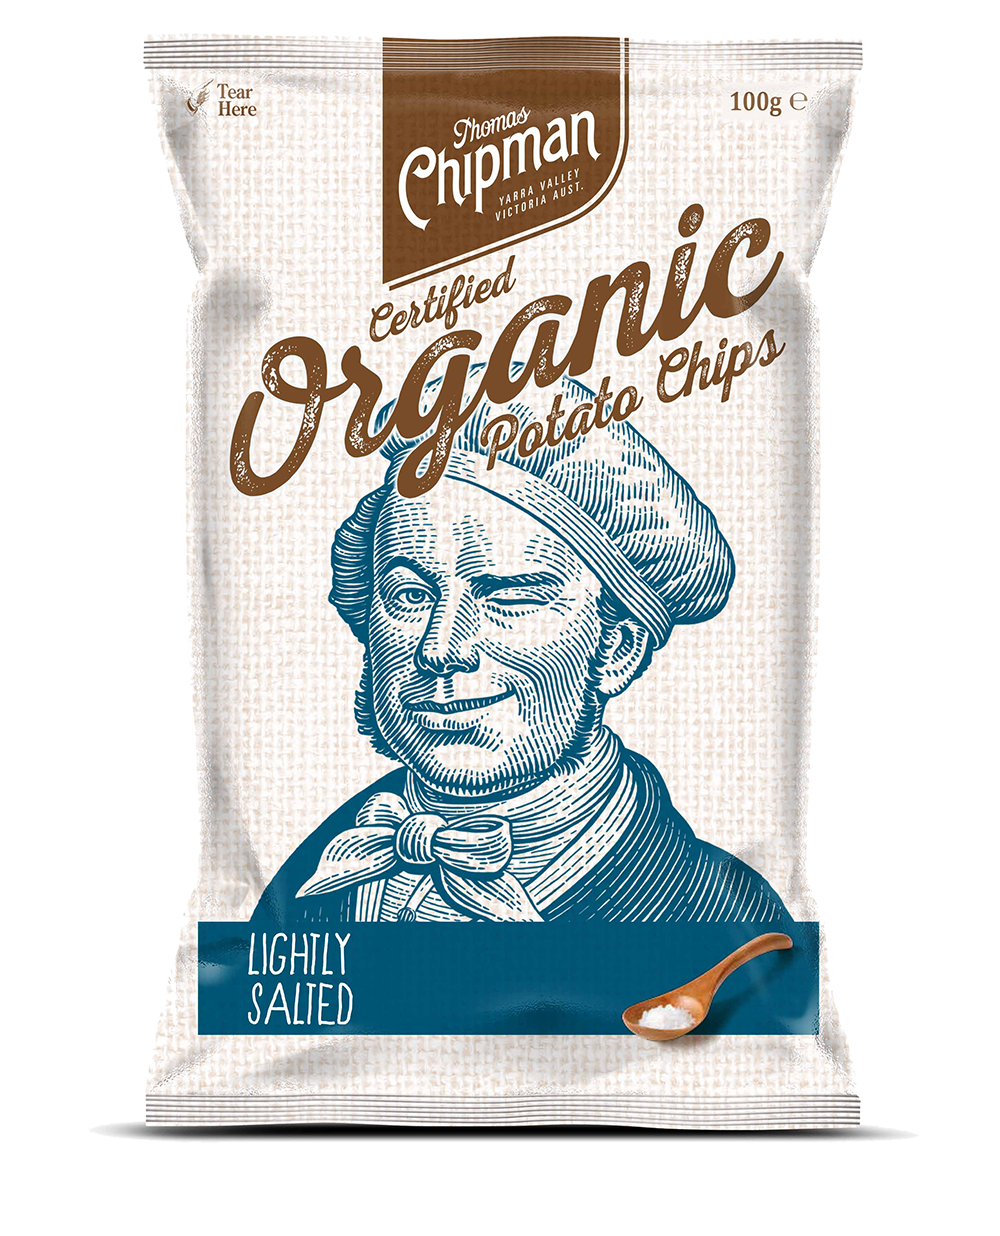 - Thomas Chipman® Lightly Salted Potato ChipsCreating a great tasting organic potato chip wasn't that difficult. Firstly, the potatoes are left in the most natural state possible – washed free of soil & then chipped, with their skins still on. Then they're gently cooked and finished off with just a sprinkle of sea salt. Available in a 100g pack